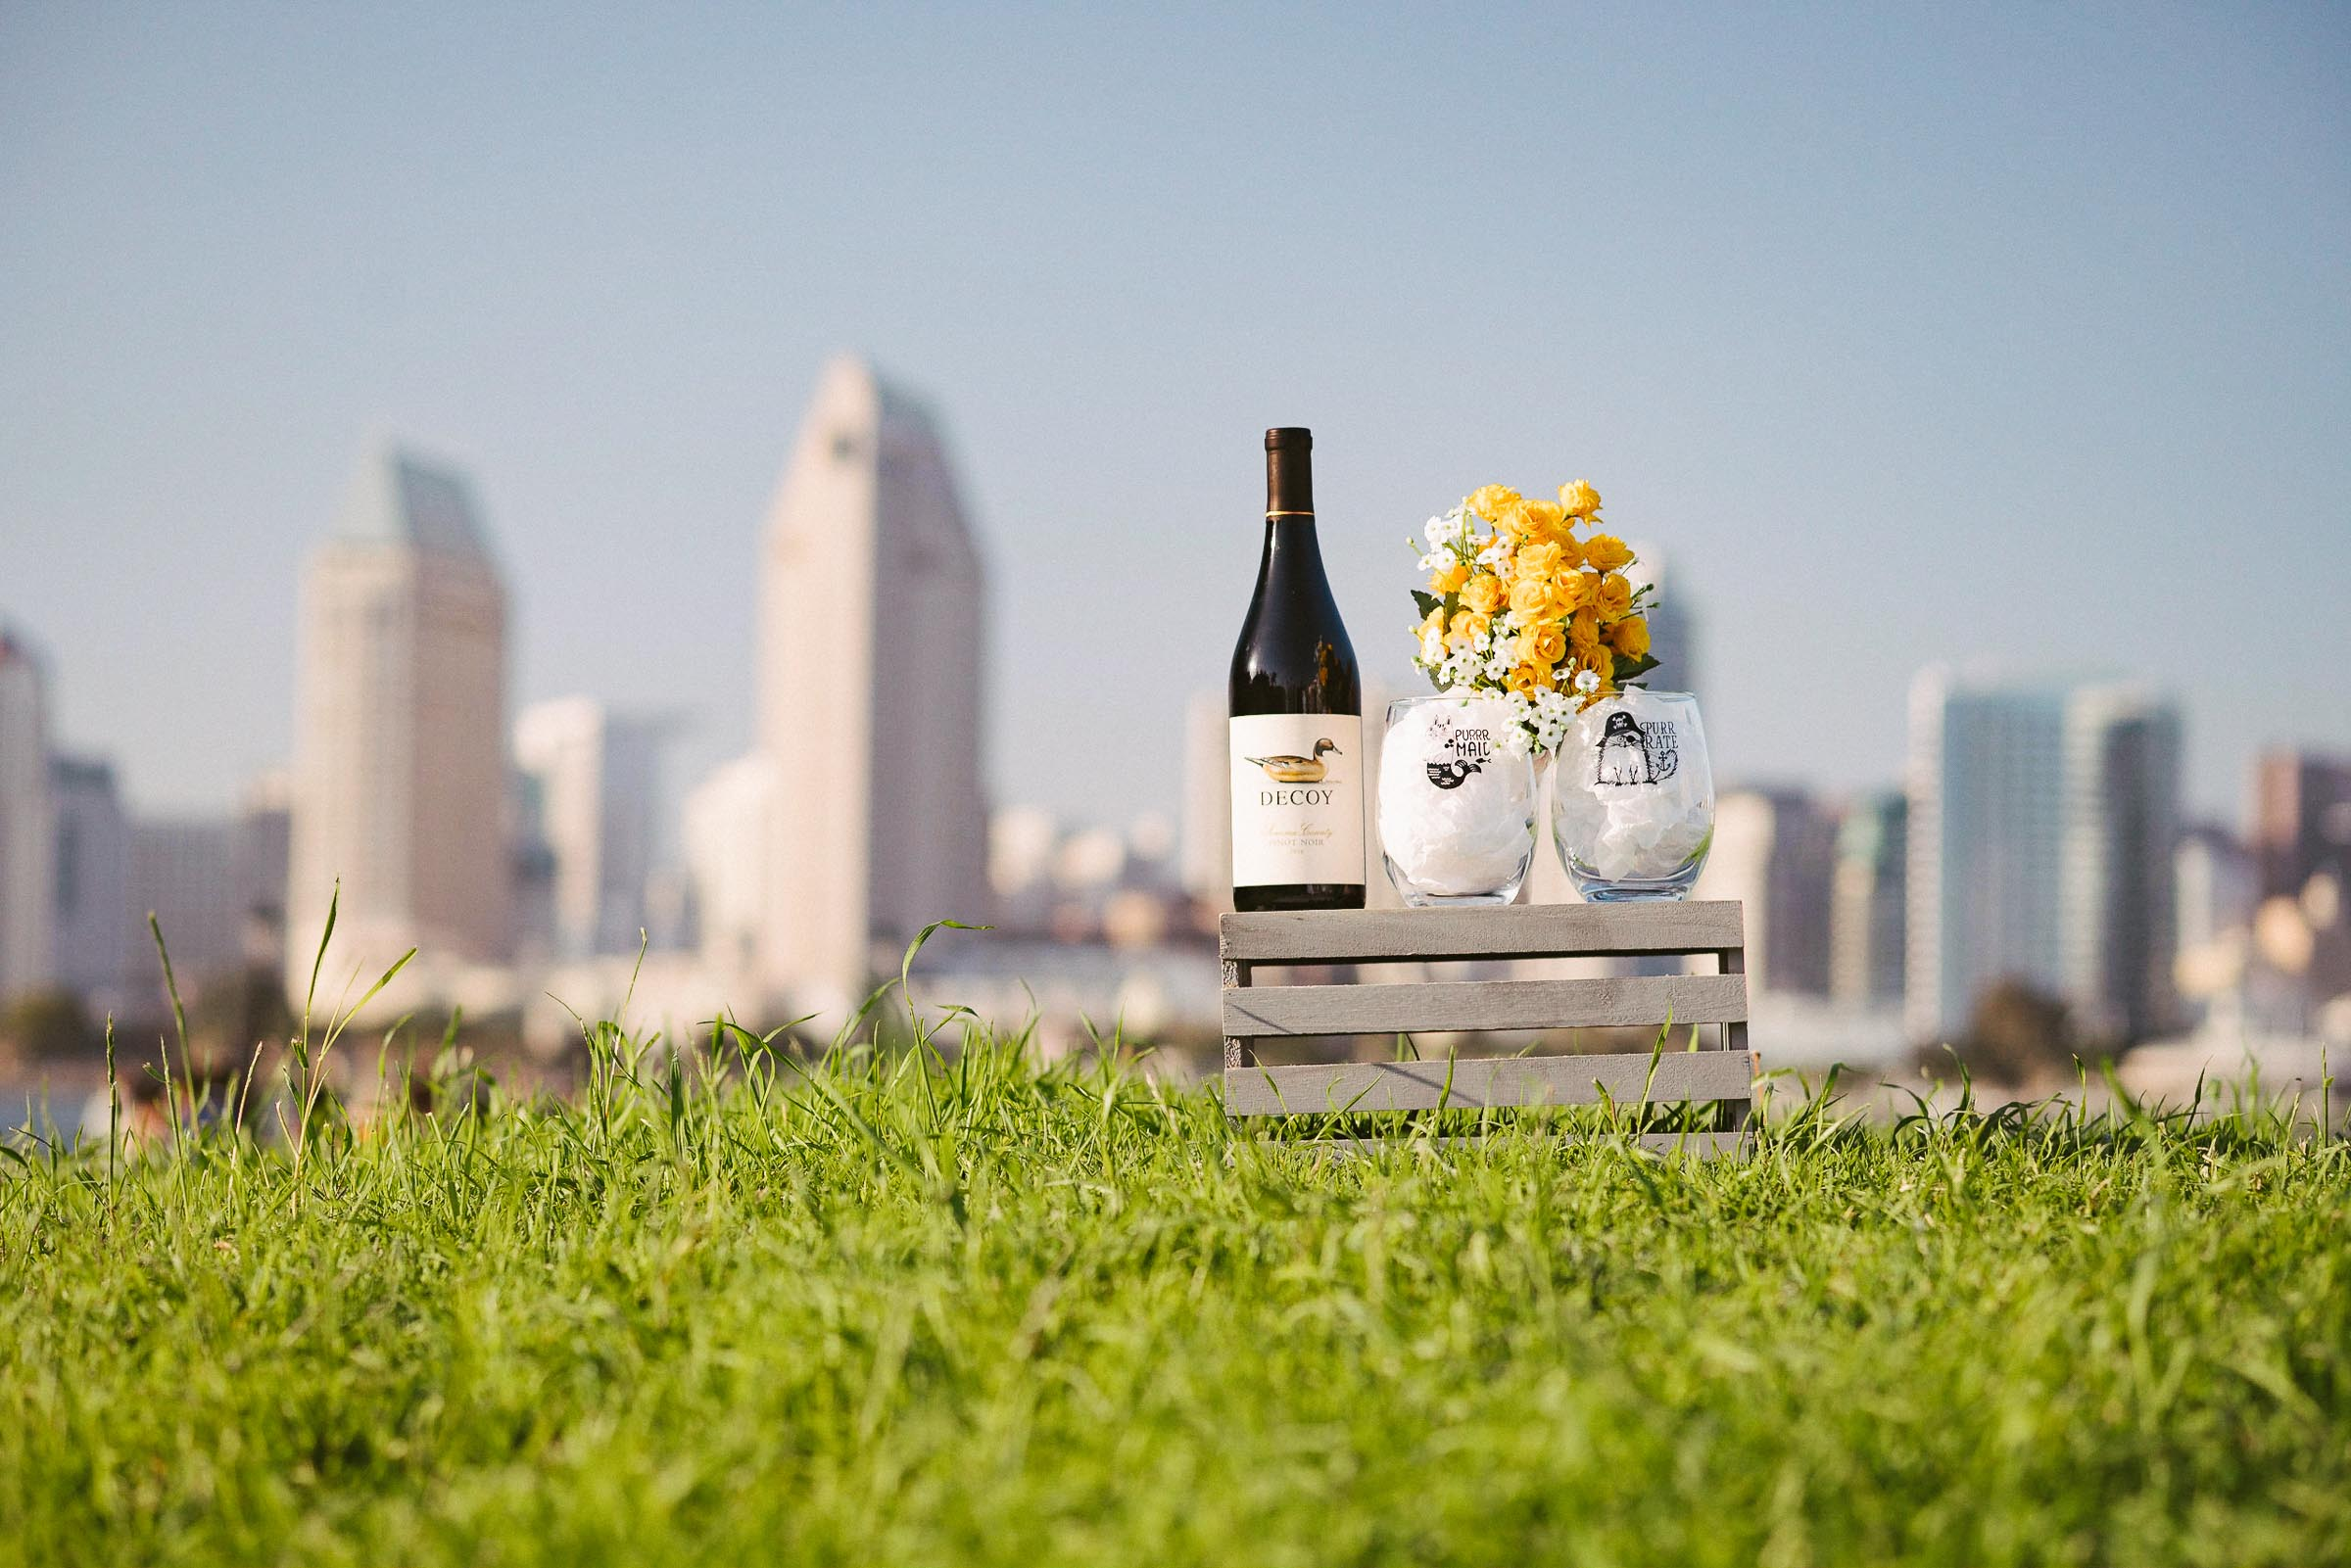 engagement session coronado island sunset san diego skyline california props yellow flowers grass wine glasses